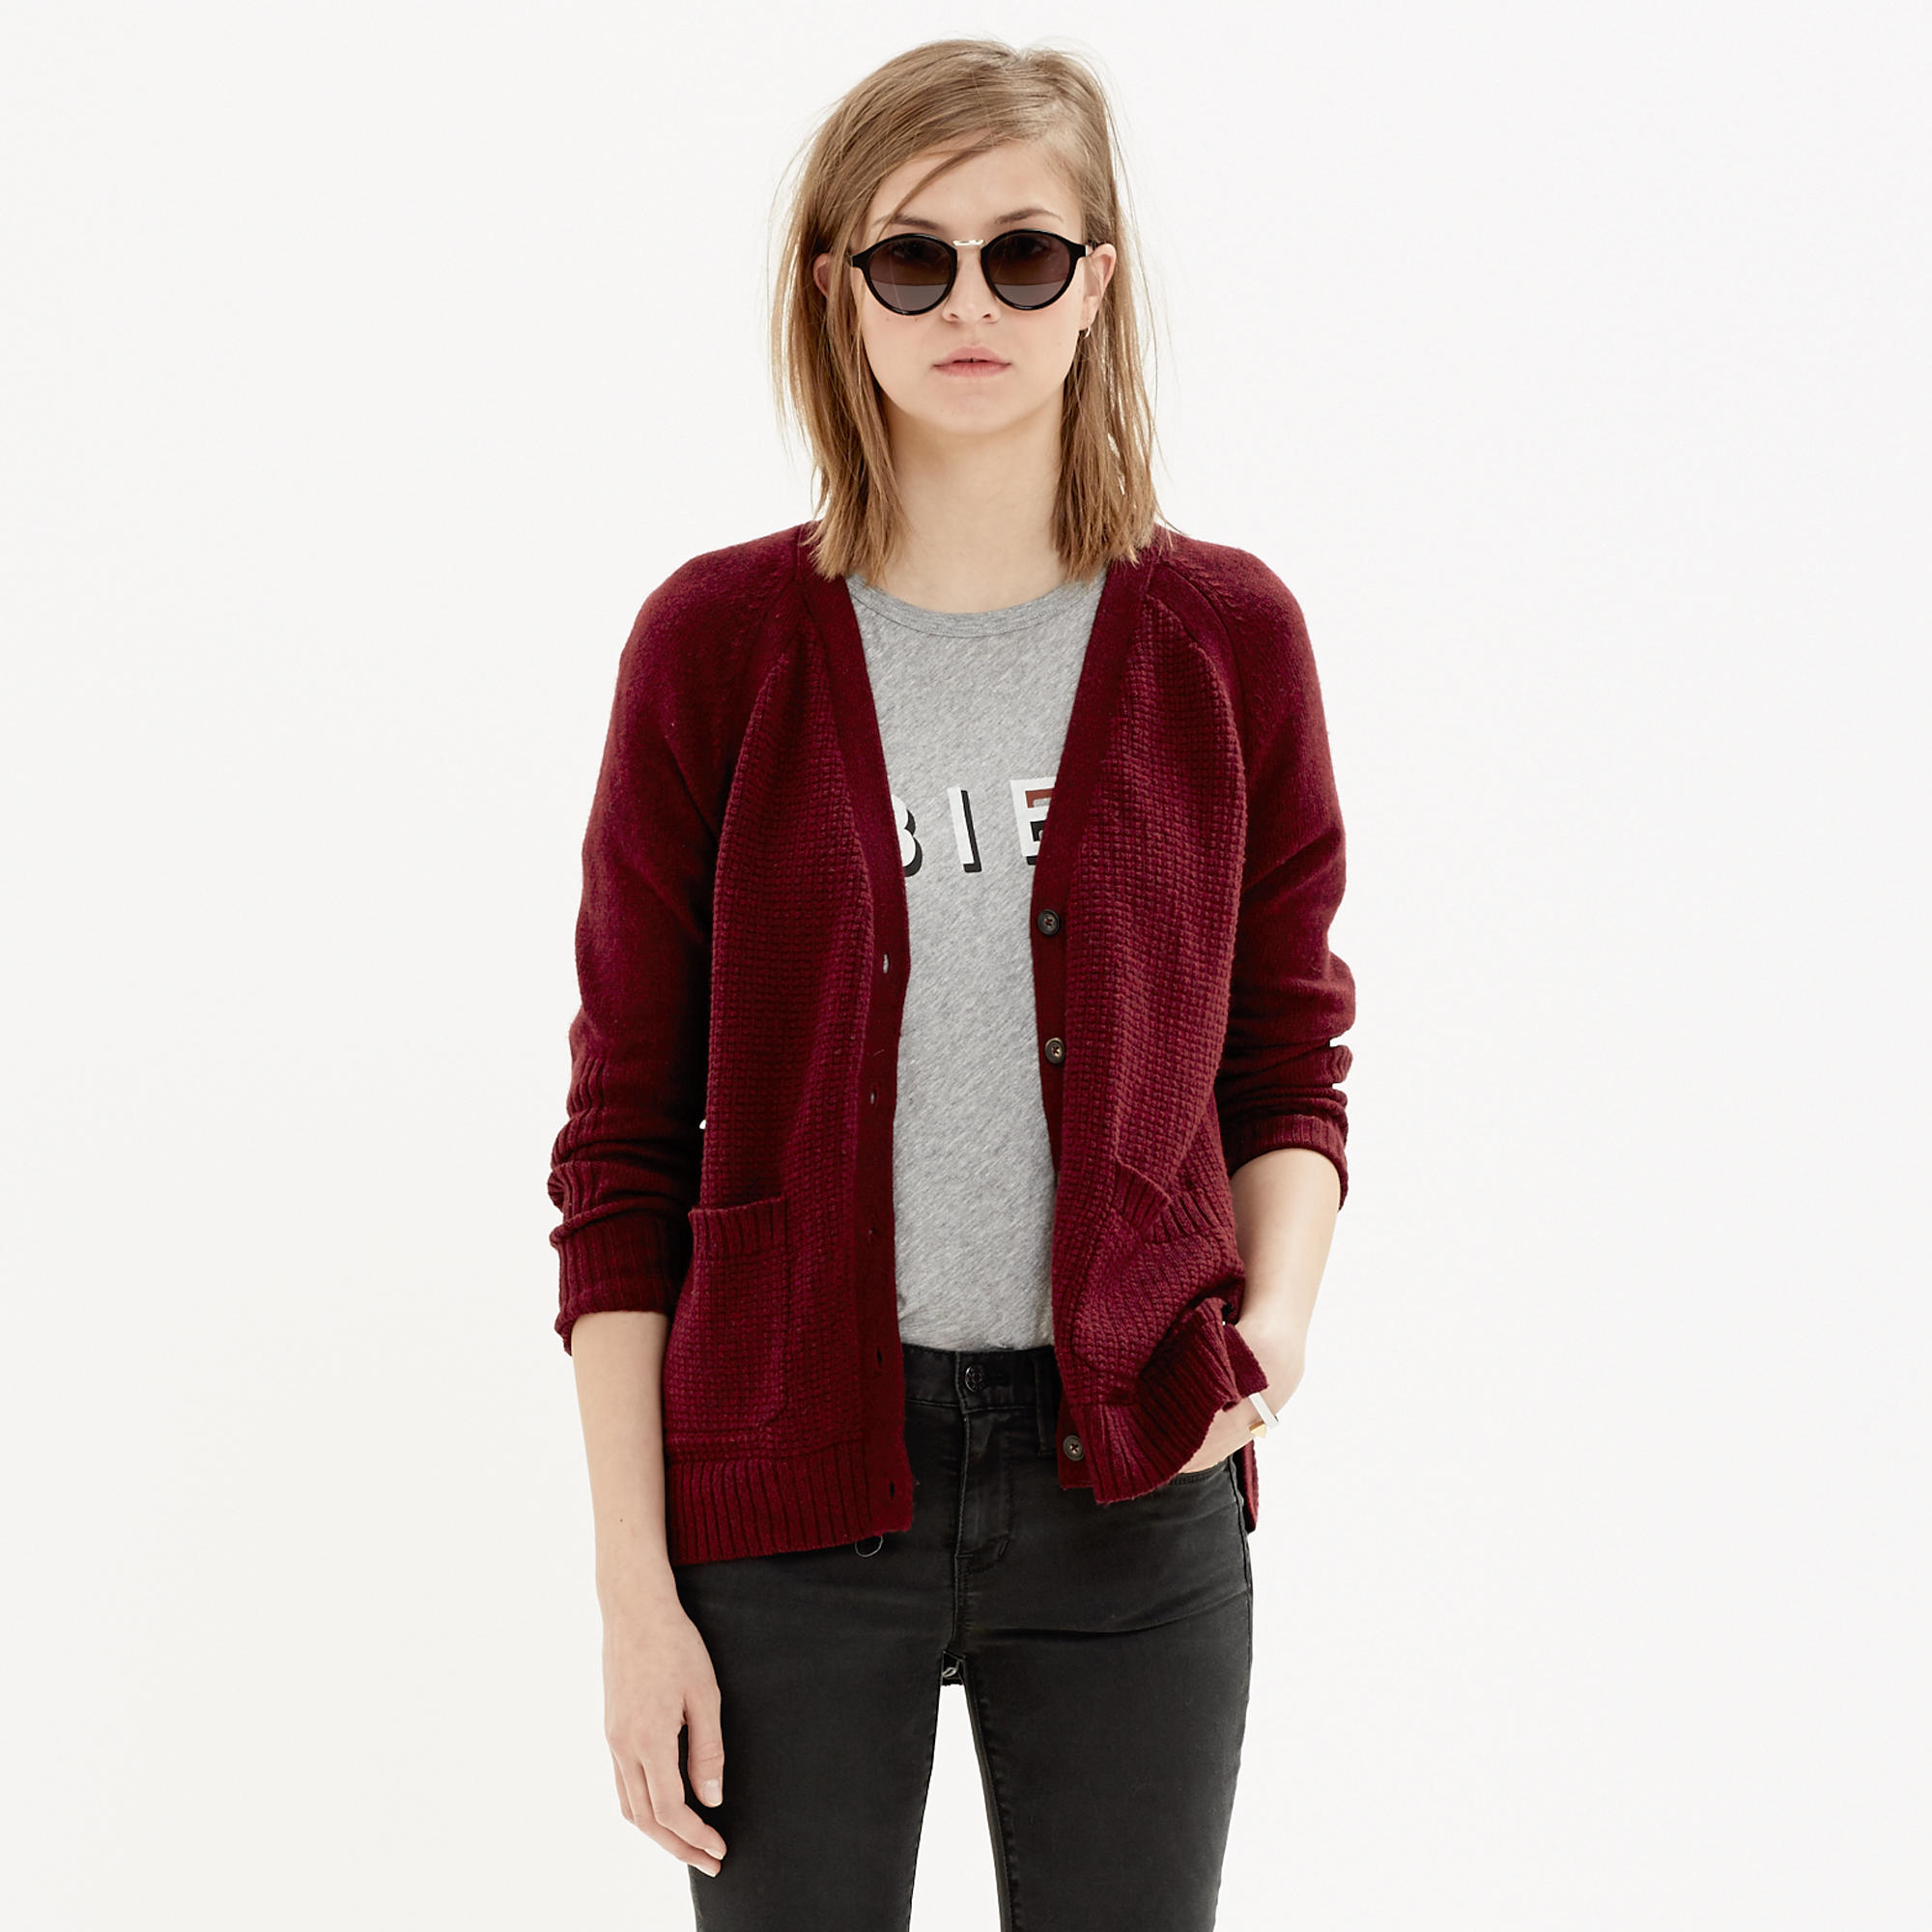 Texturework Cardigan : cardigans & sweater-jackets | Madewell